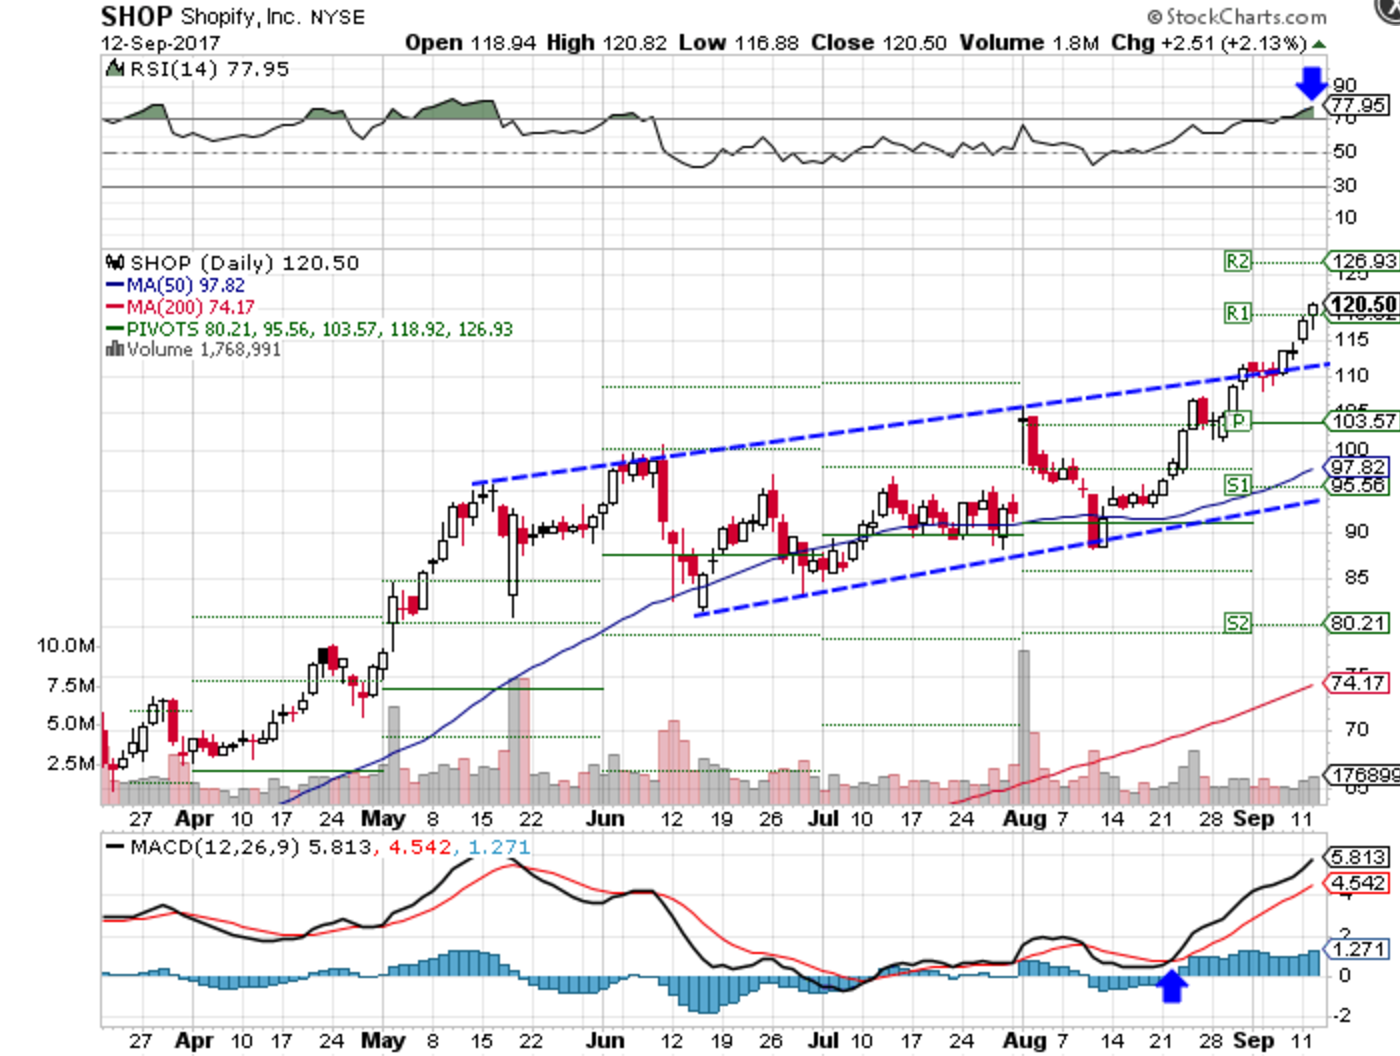 Technical chart showing the performance of Shopify, Inc. (SHOP) stock